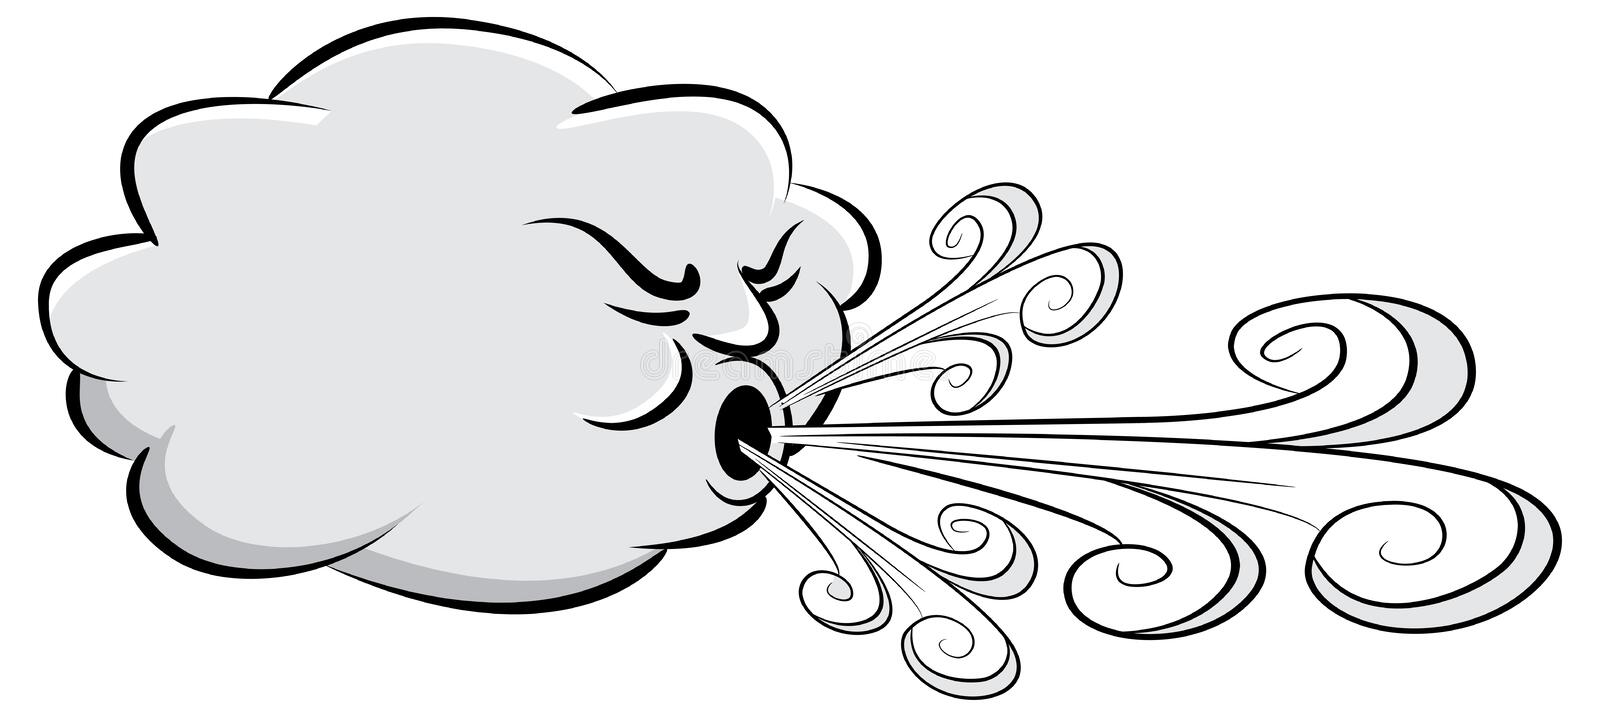 Windy Day Cloud Blowing Wind libre illustration